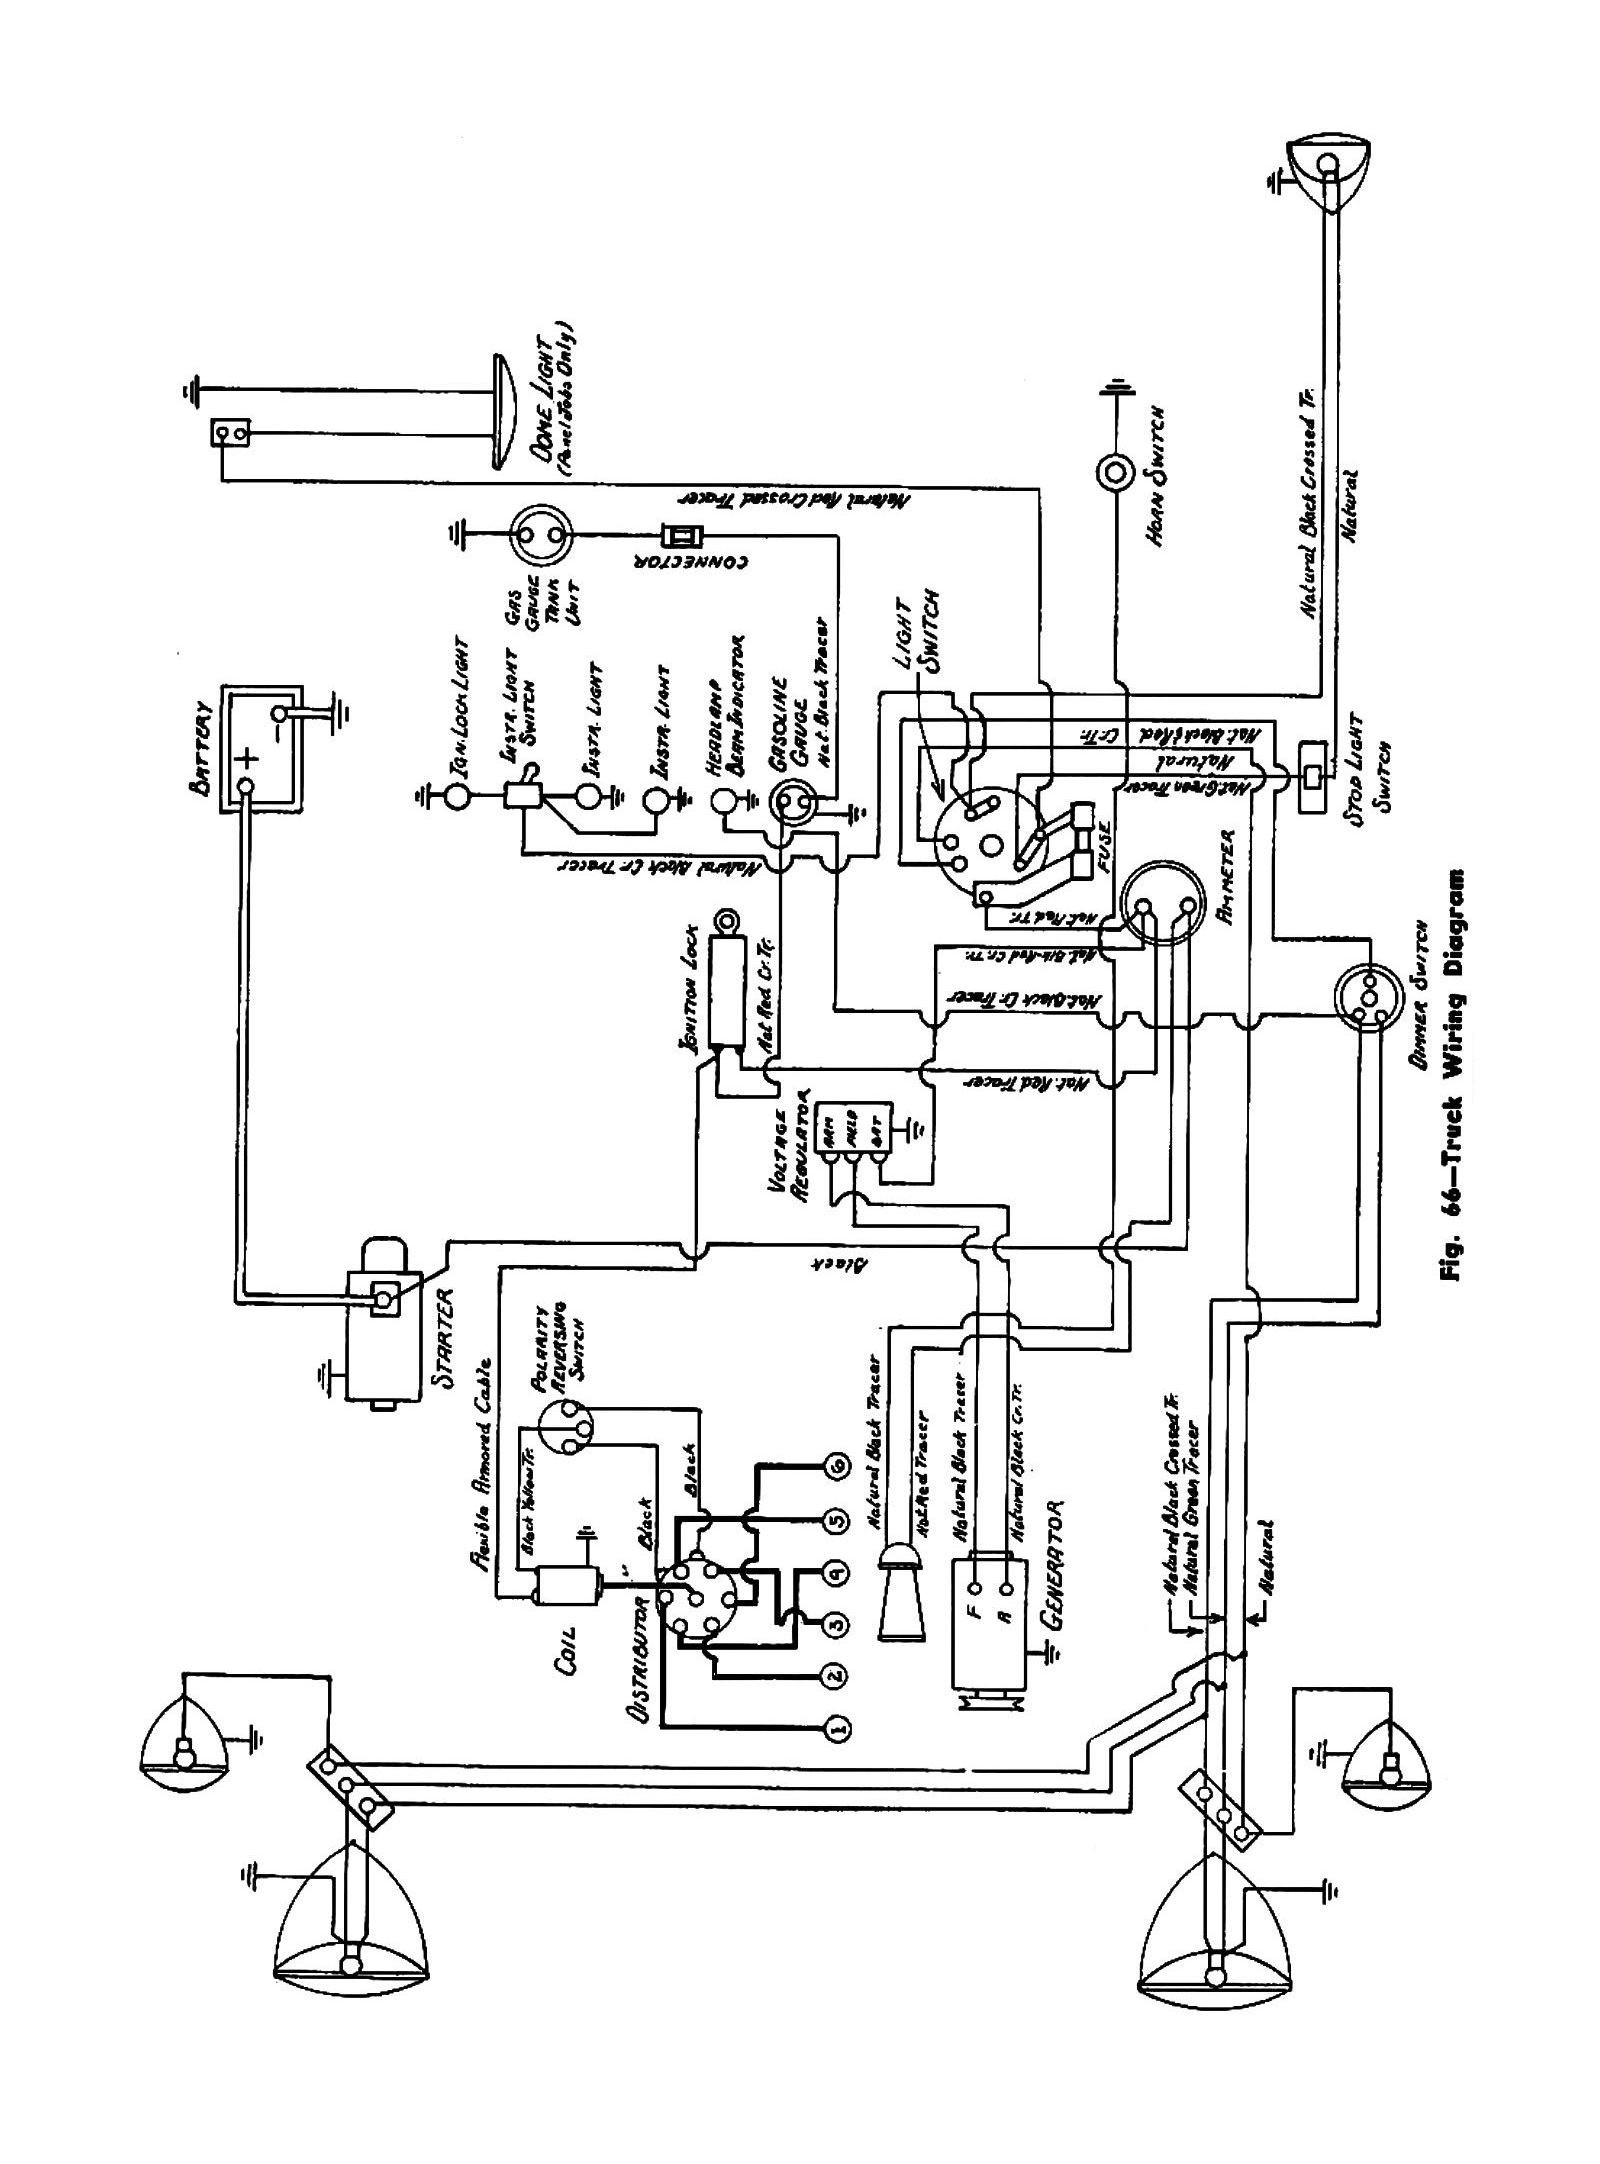 47 International Trucks Wiring Diagram - Wiring Diagram Data Oreo - International Truck Wiring Diagram Manual